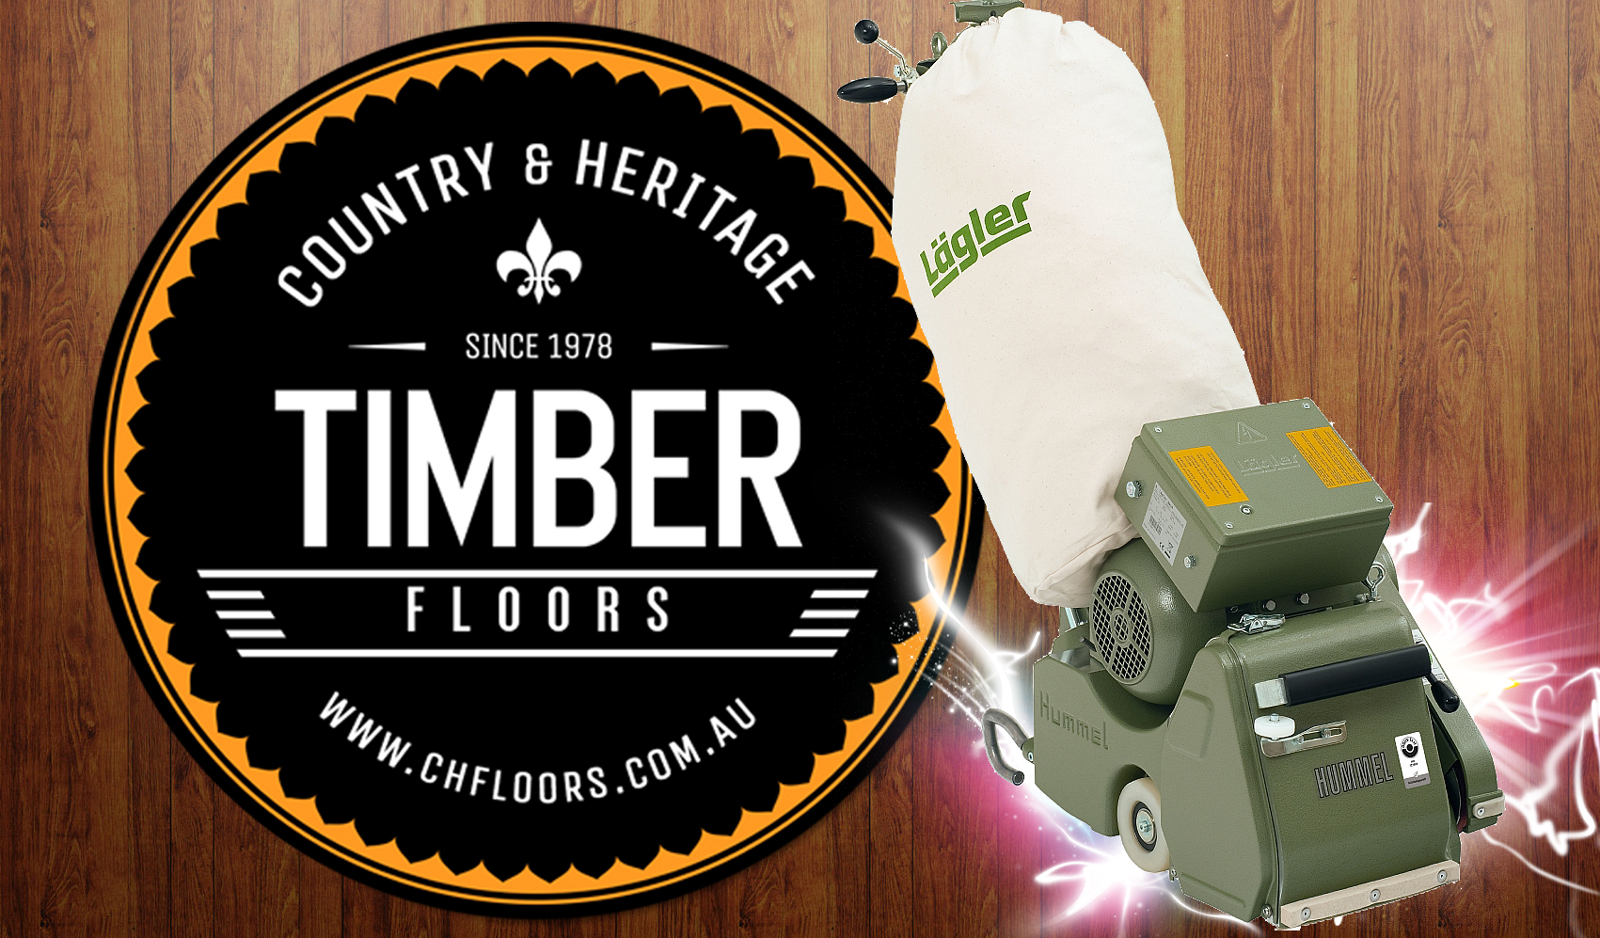 canberra timber floor sanding and polishing experts